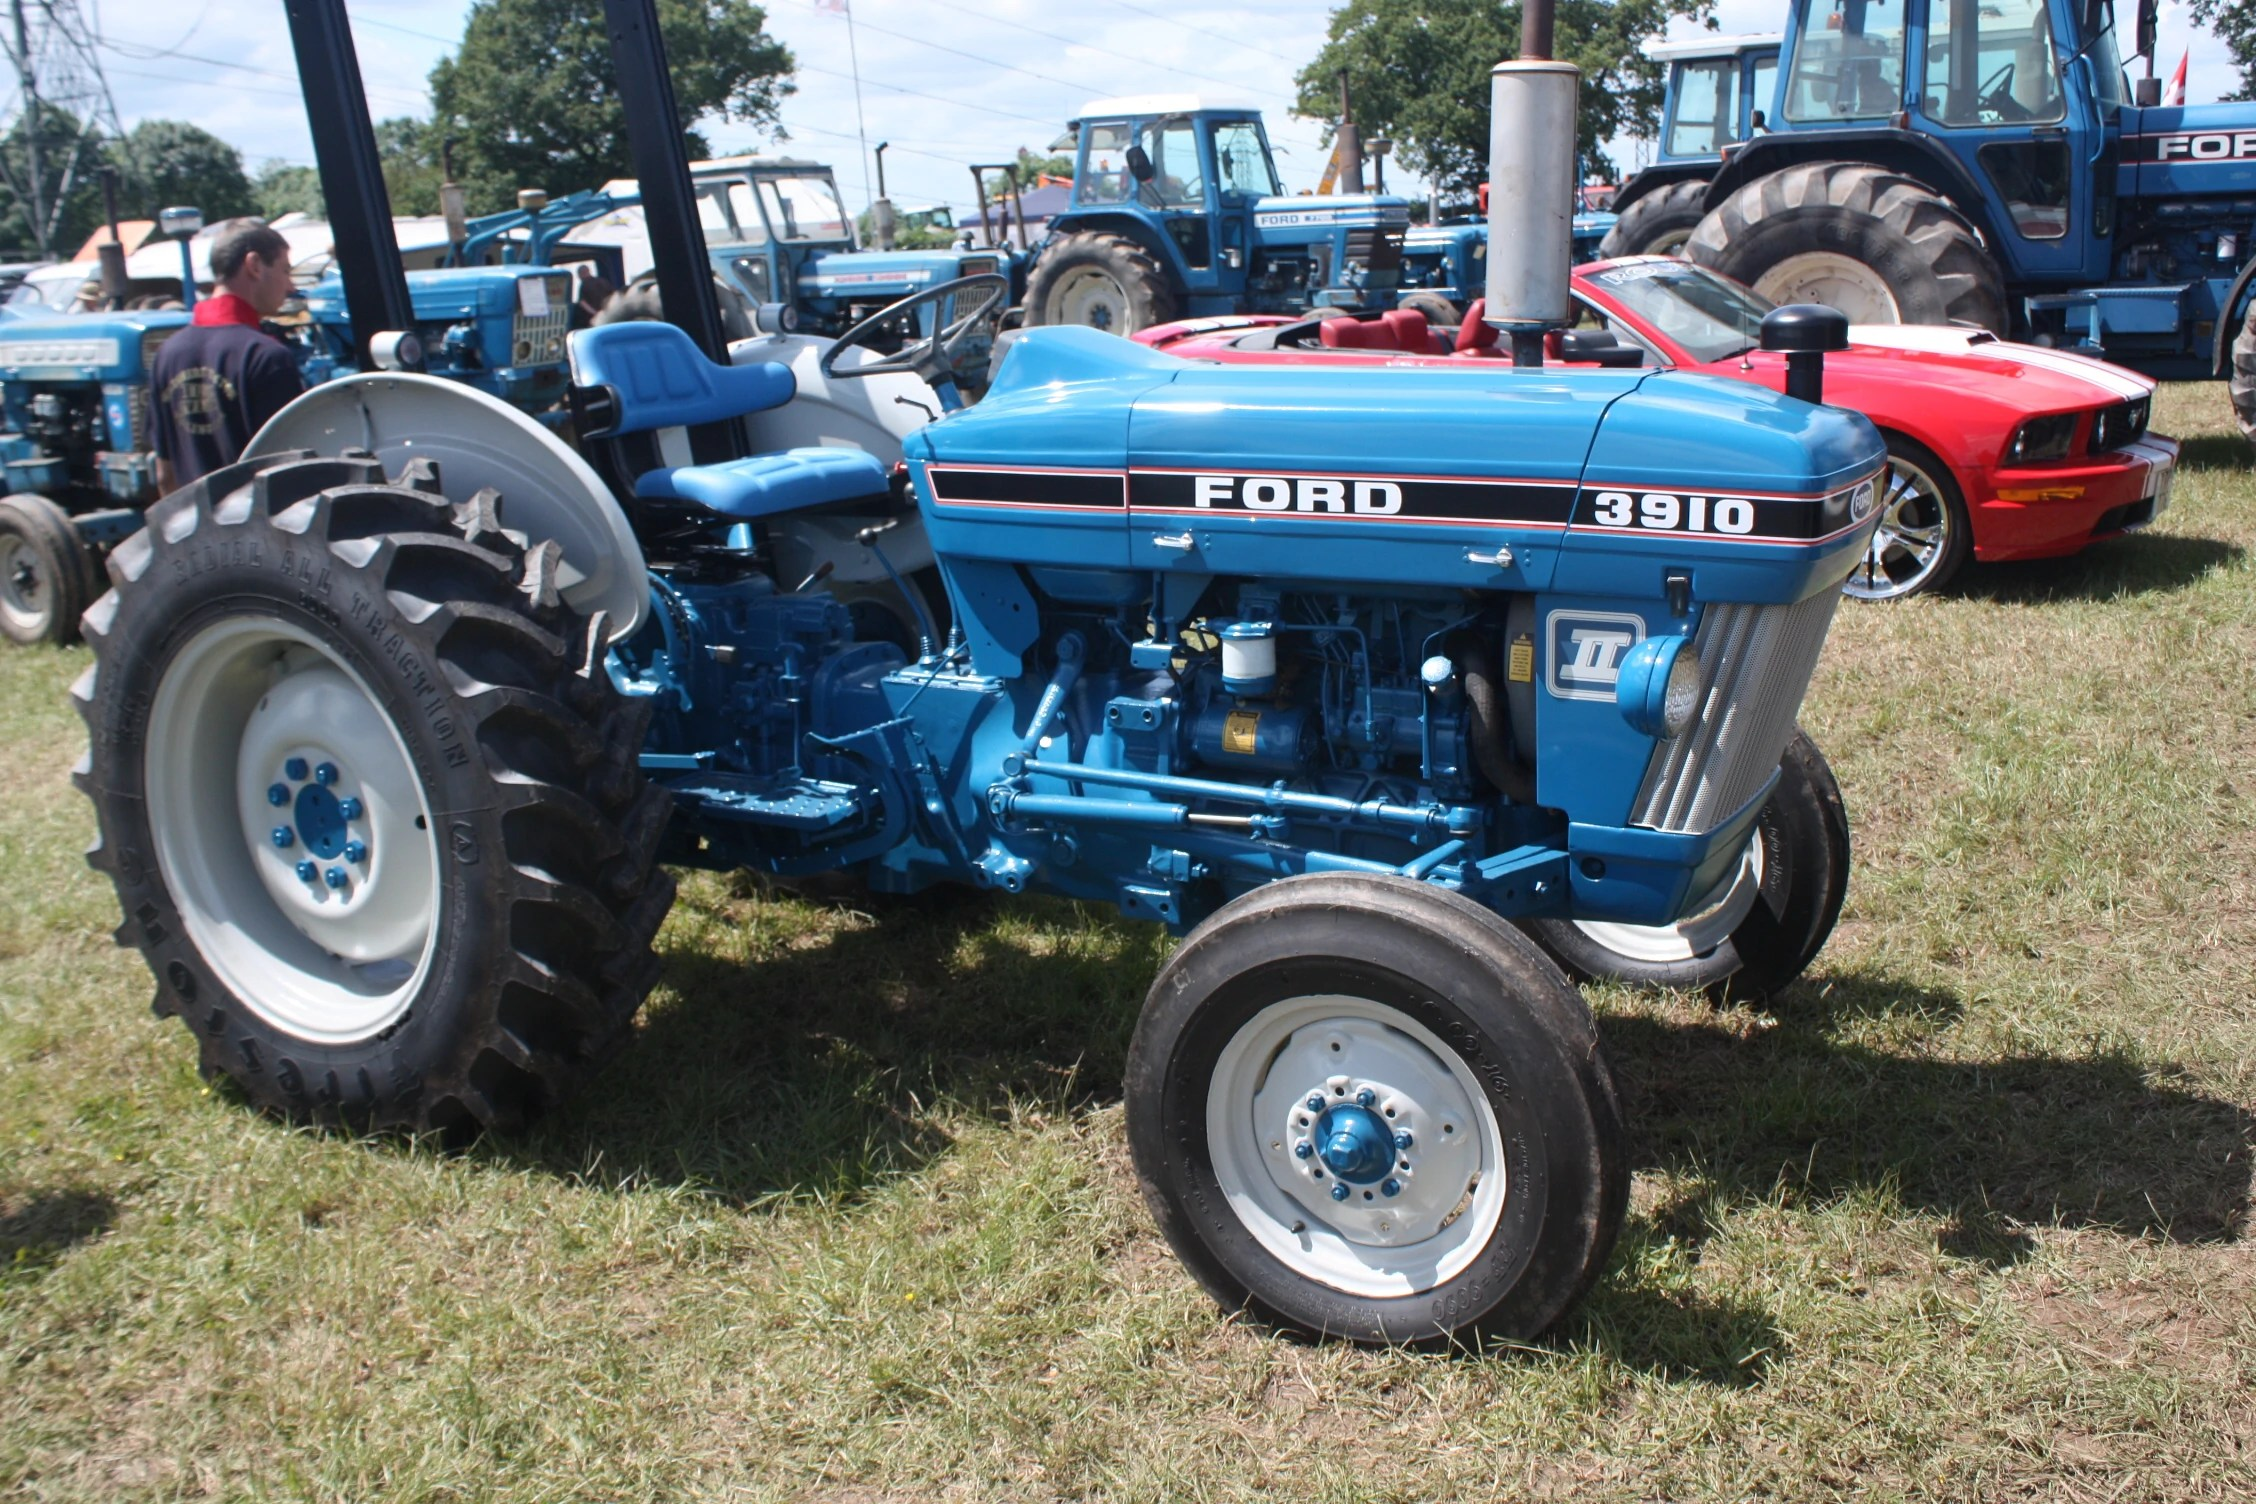 small resolution of ford 3910 wiring diagram wiring diagrams schematics diesel tractor wiring diagram 2810 ford tractor wiring diagram